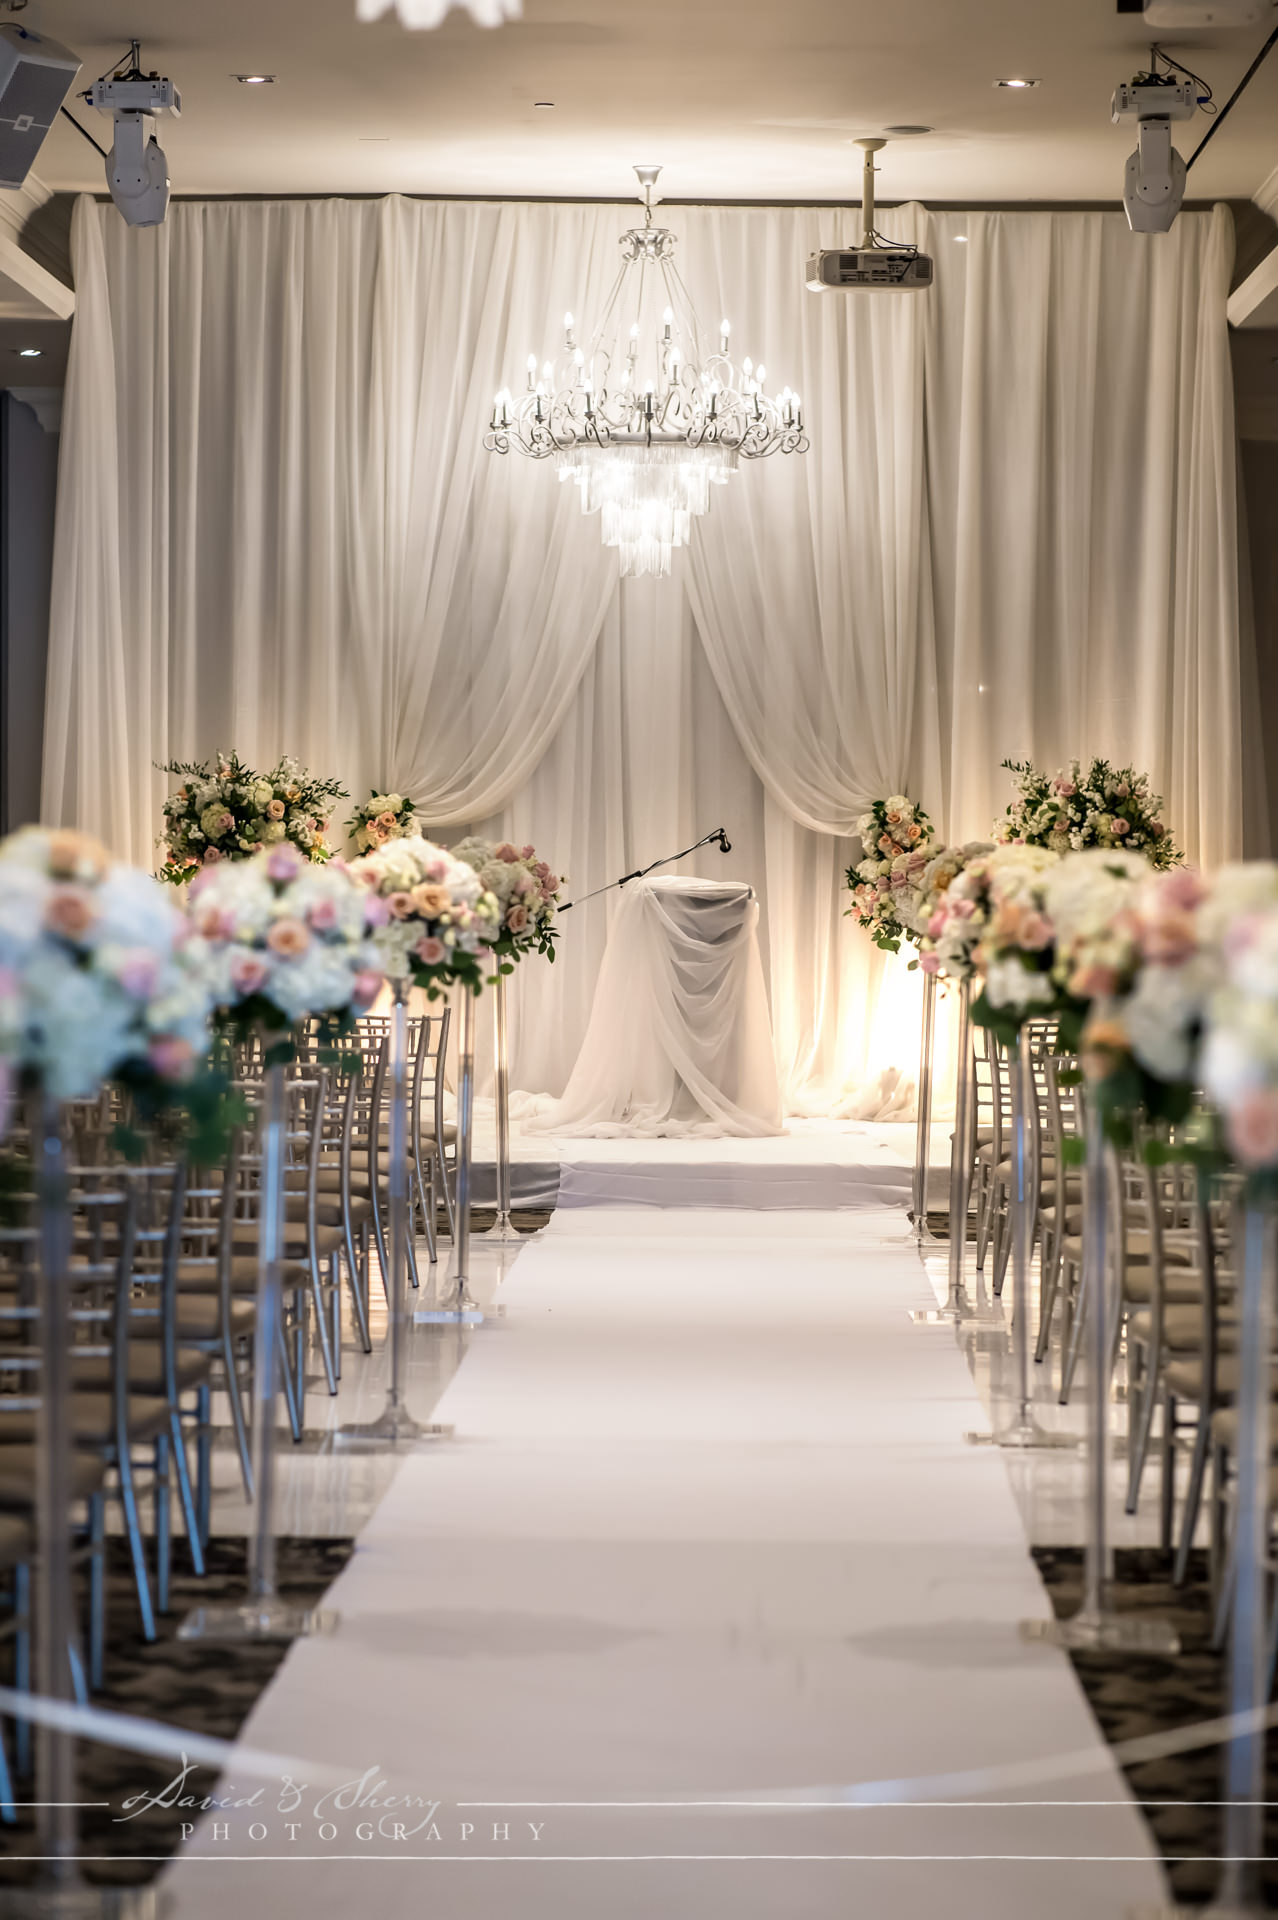 The Aisle at Parkview Manor